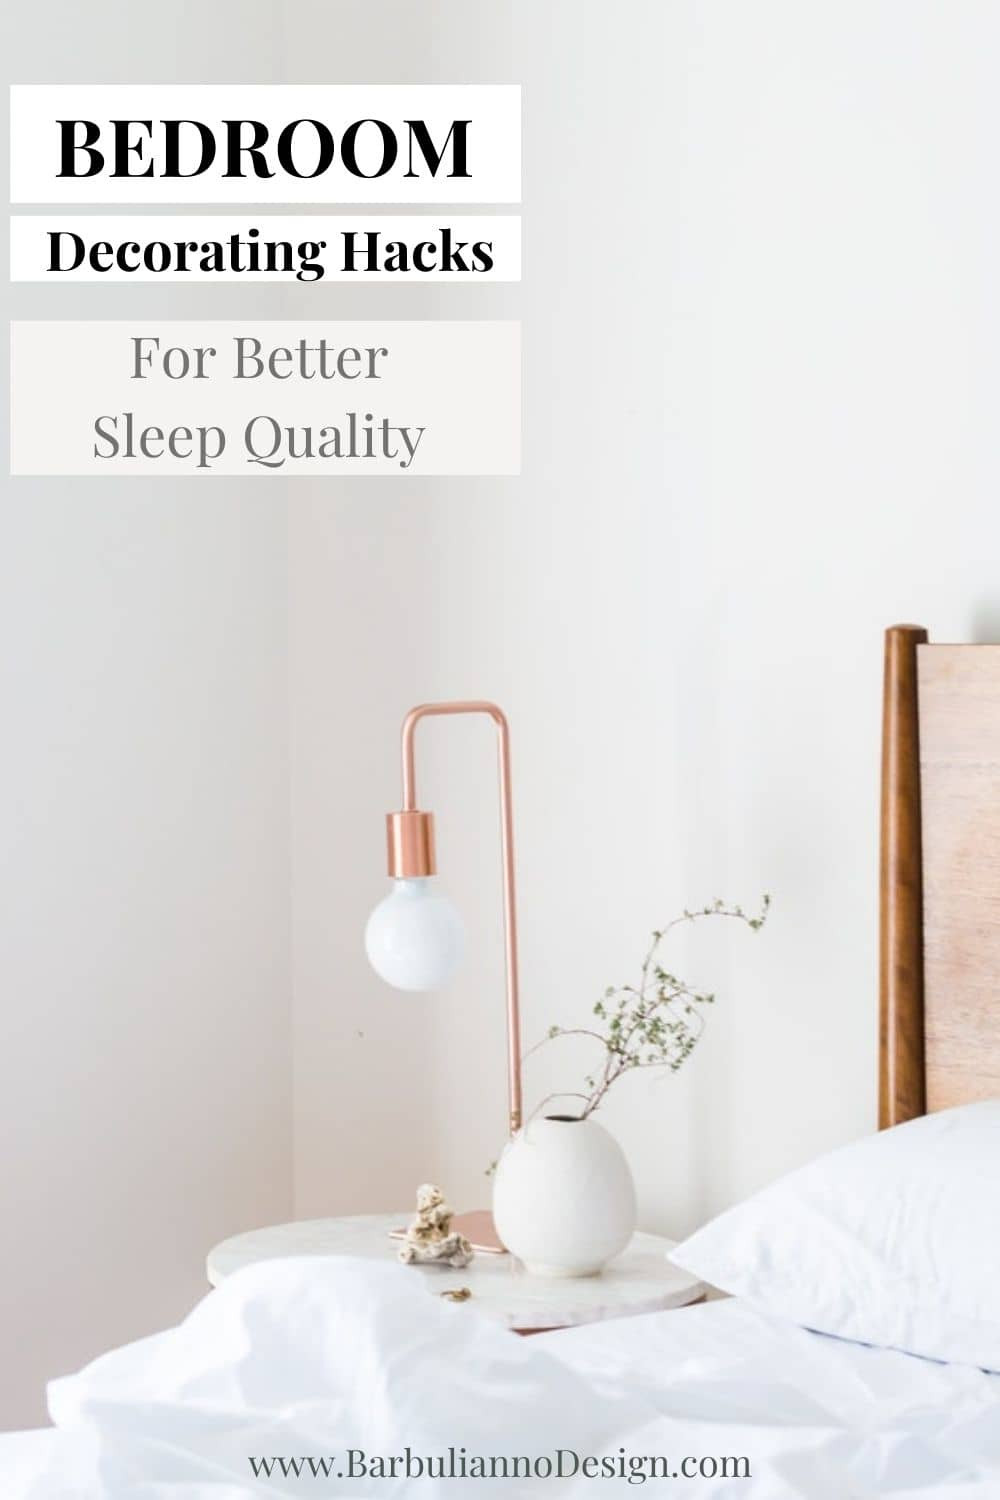 How to make bedroom perfect for sleep. Decorating hacks.